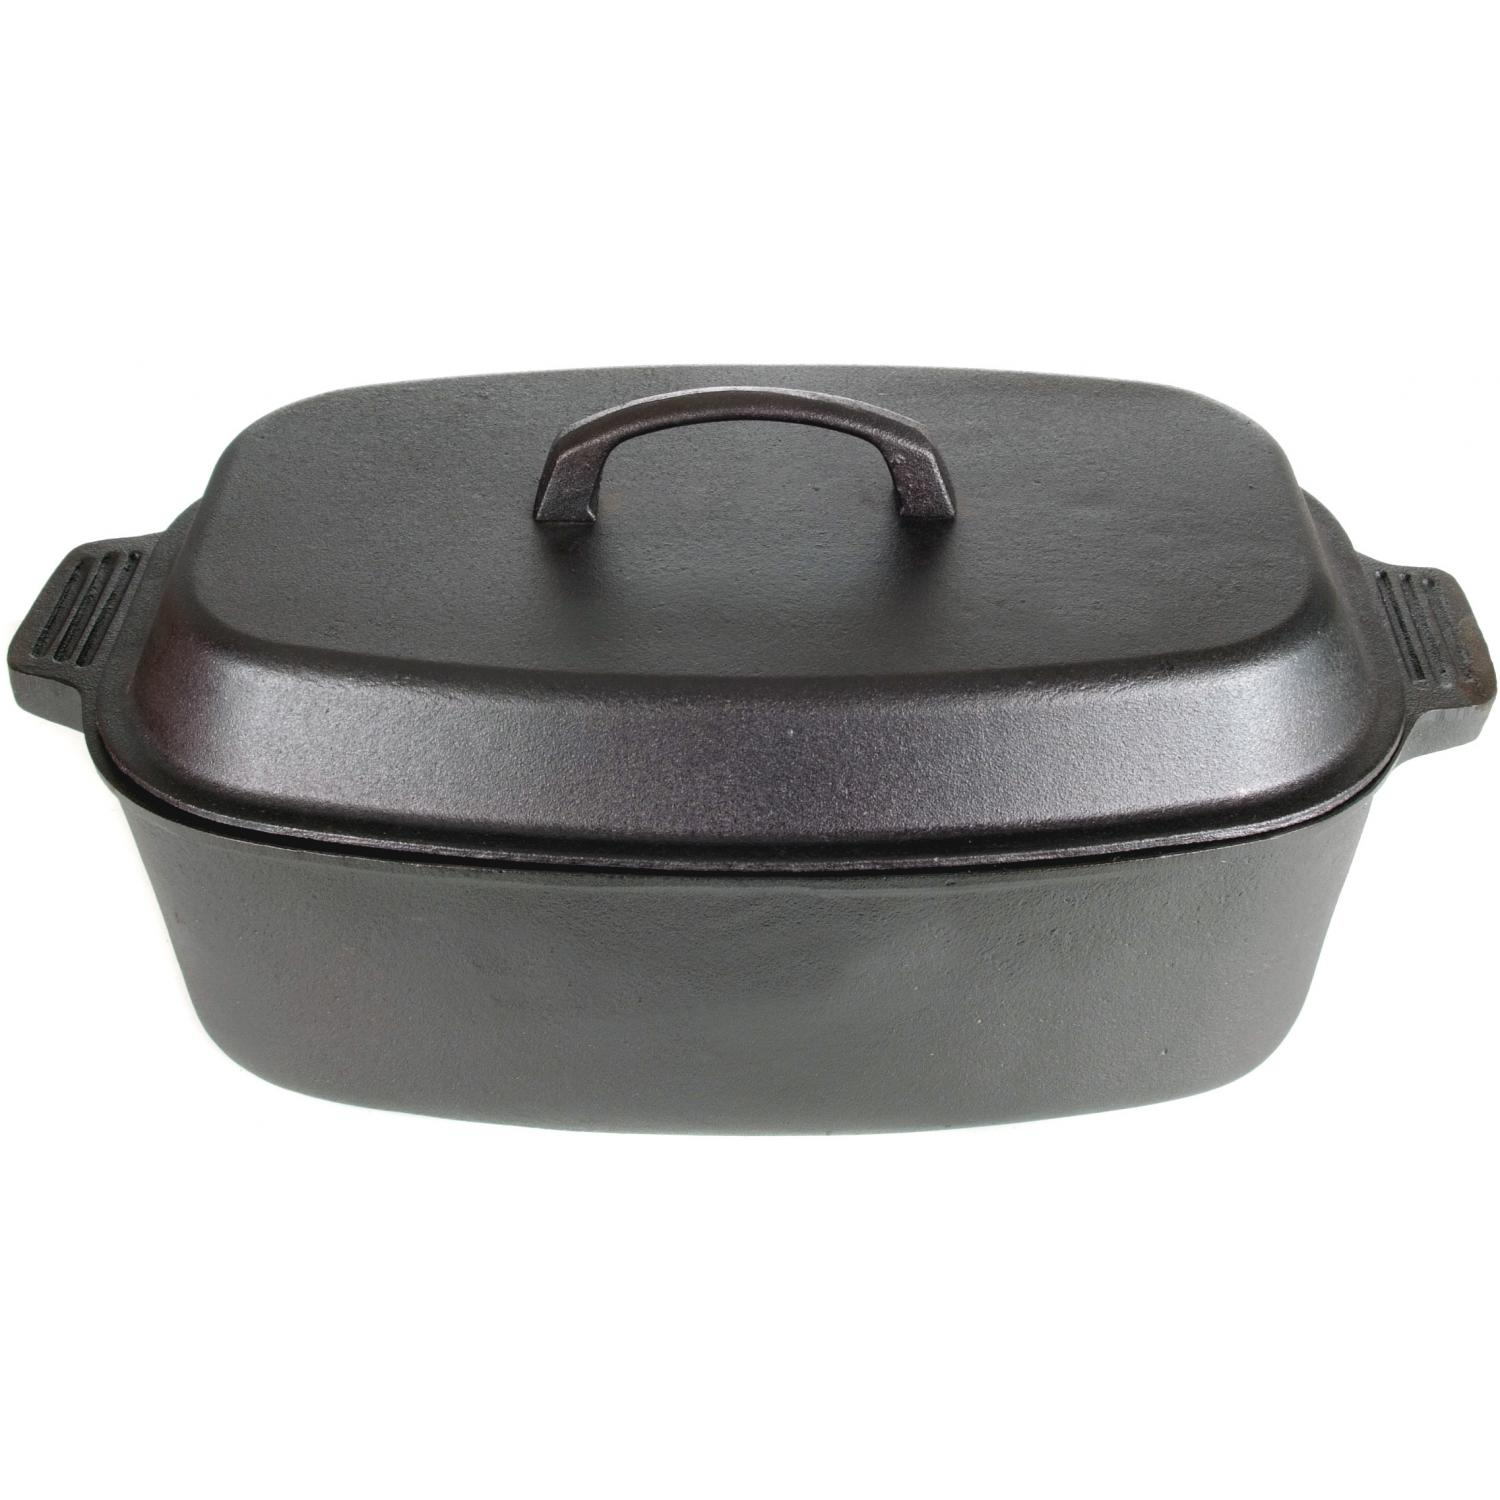 how to clean le creuset cast iron pot